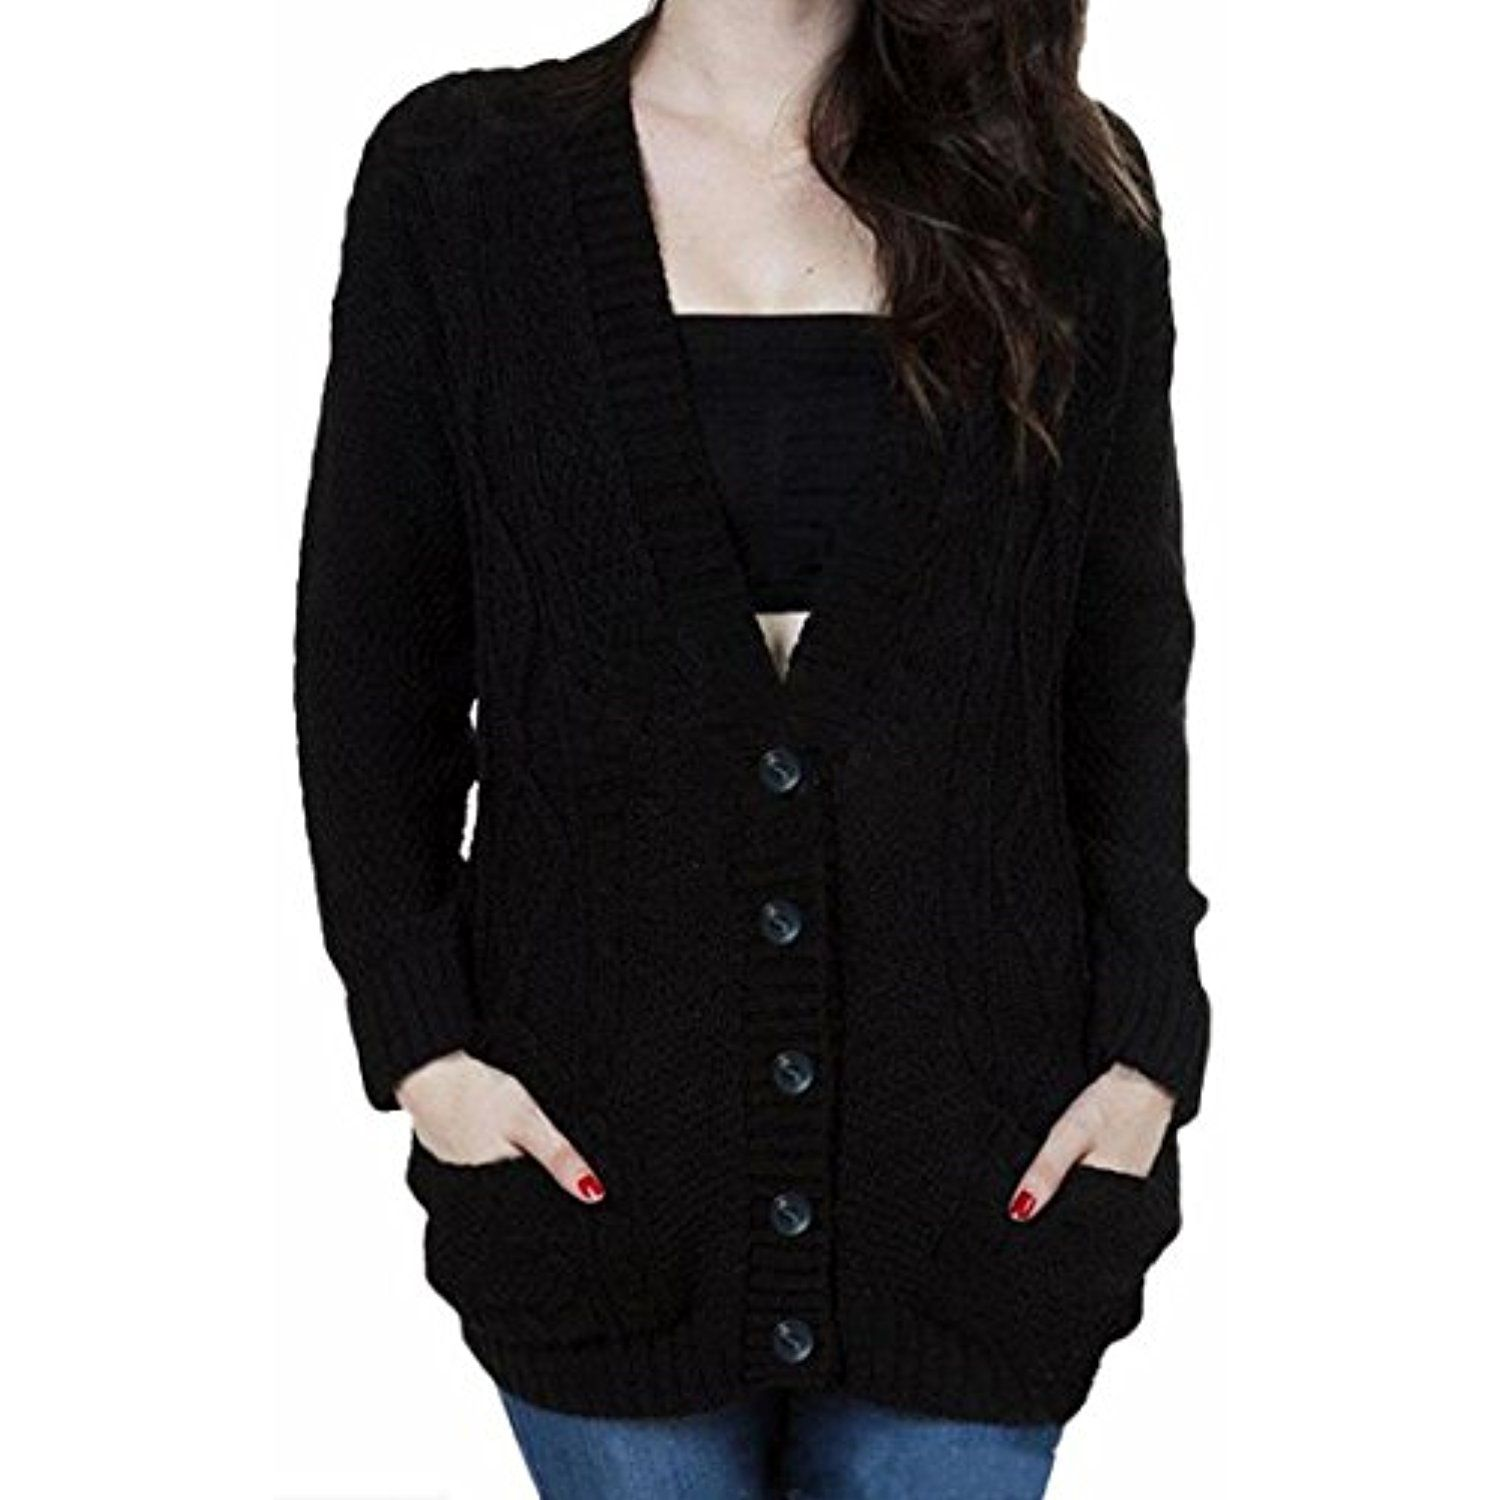 NQ Women's Loose Knit V Neck Batwing Sleeves Button Up Sweater ...